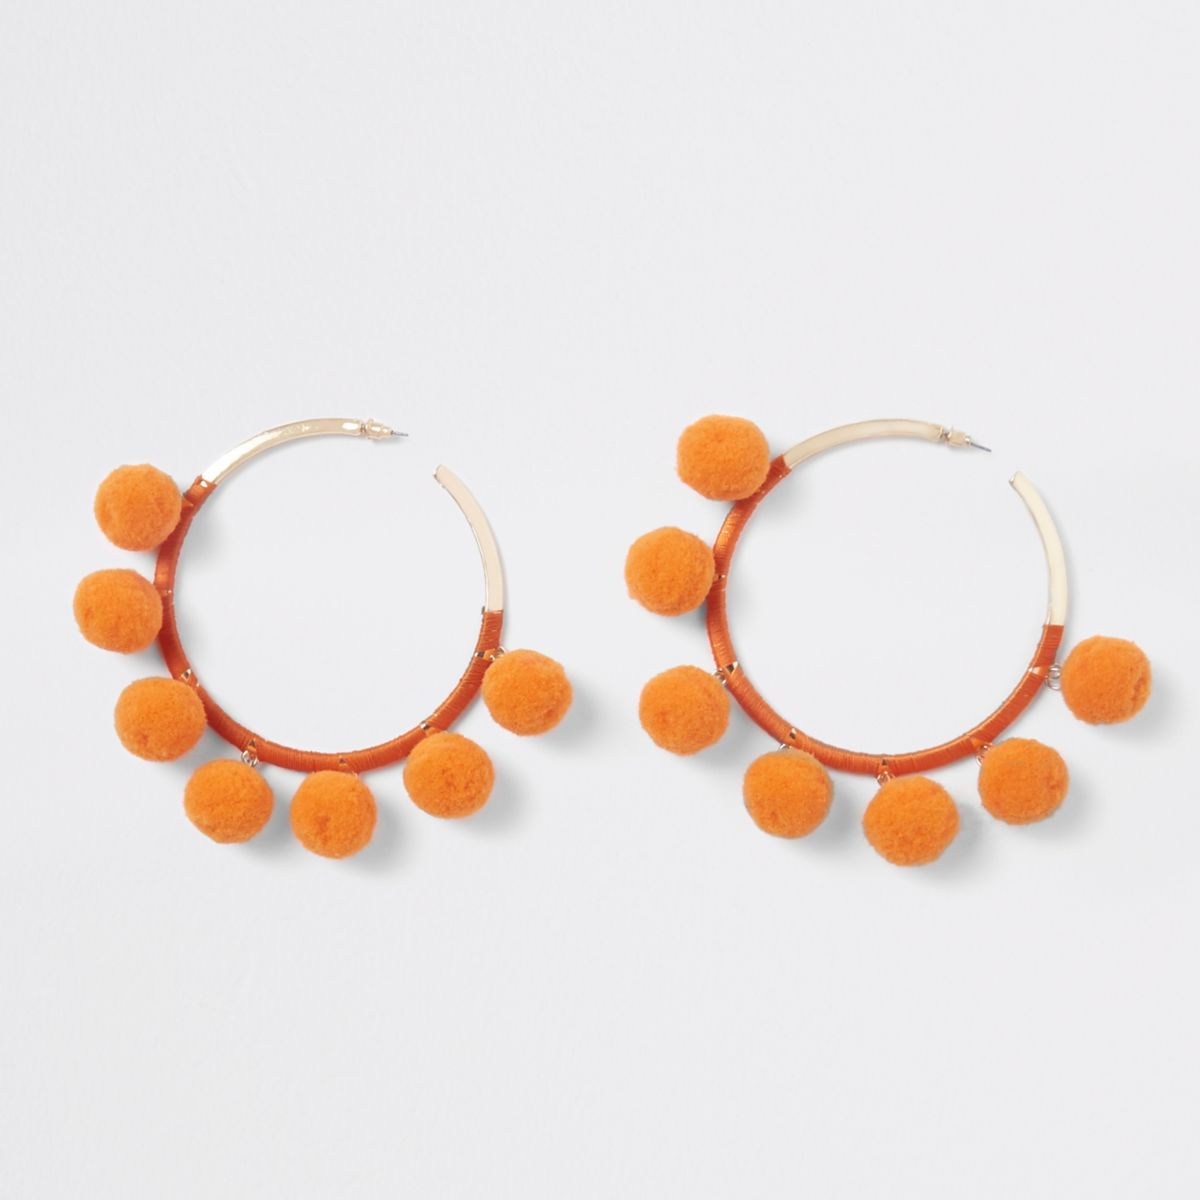 Orange gold tone pom pom hoop earrings